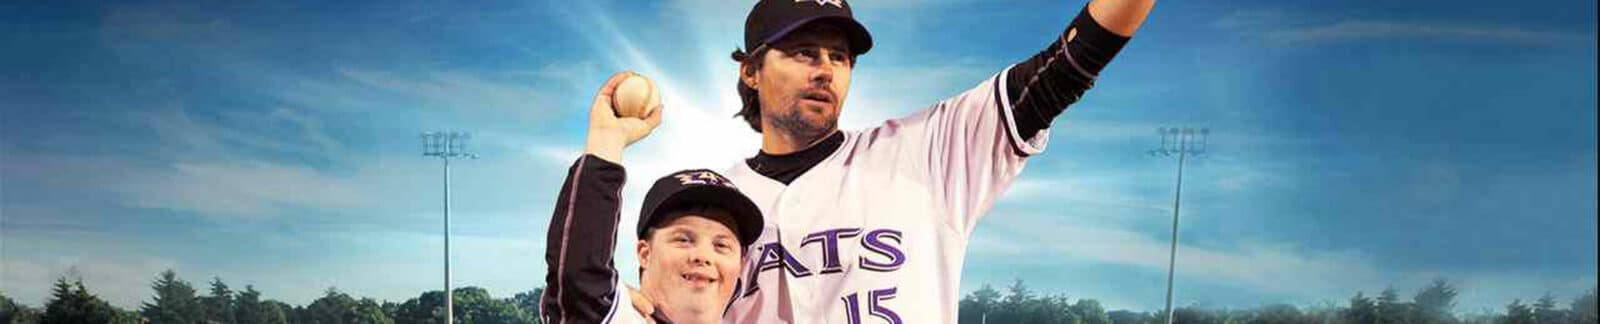 Where Hope Grows baseball movie header